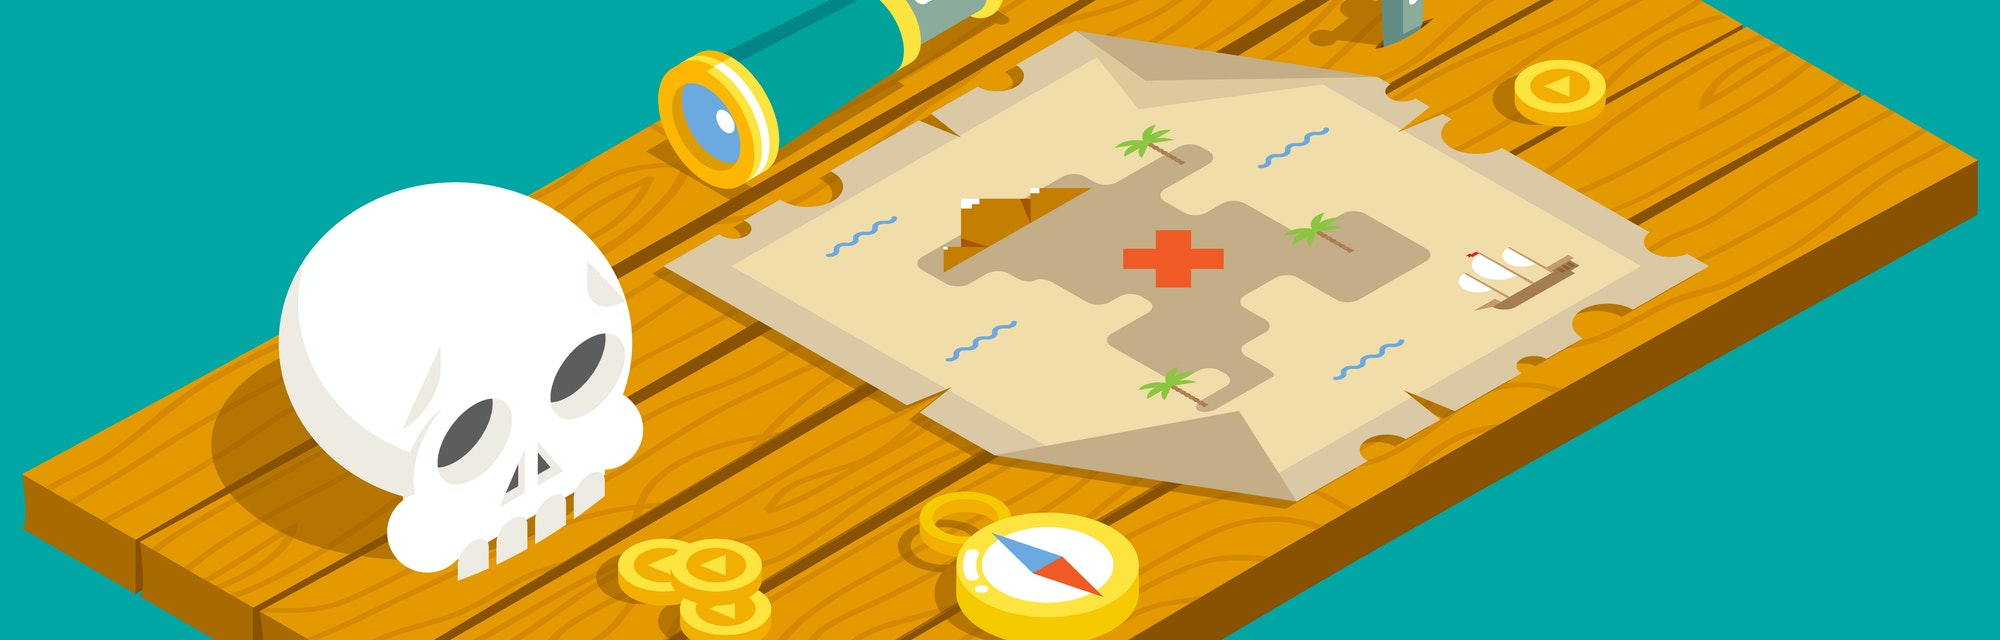 Isometric Pirate Treasure Adventure Game RPG Map Action Knife dagger Spyglass Skull Compass Icon Wood Table Background Concept Flat Design  Illustration